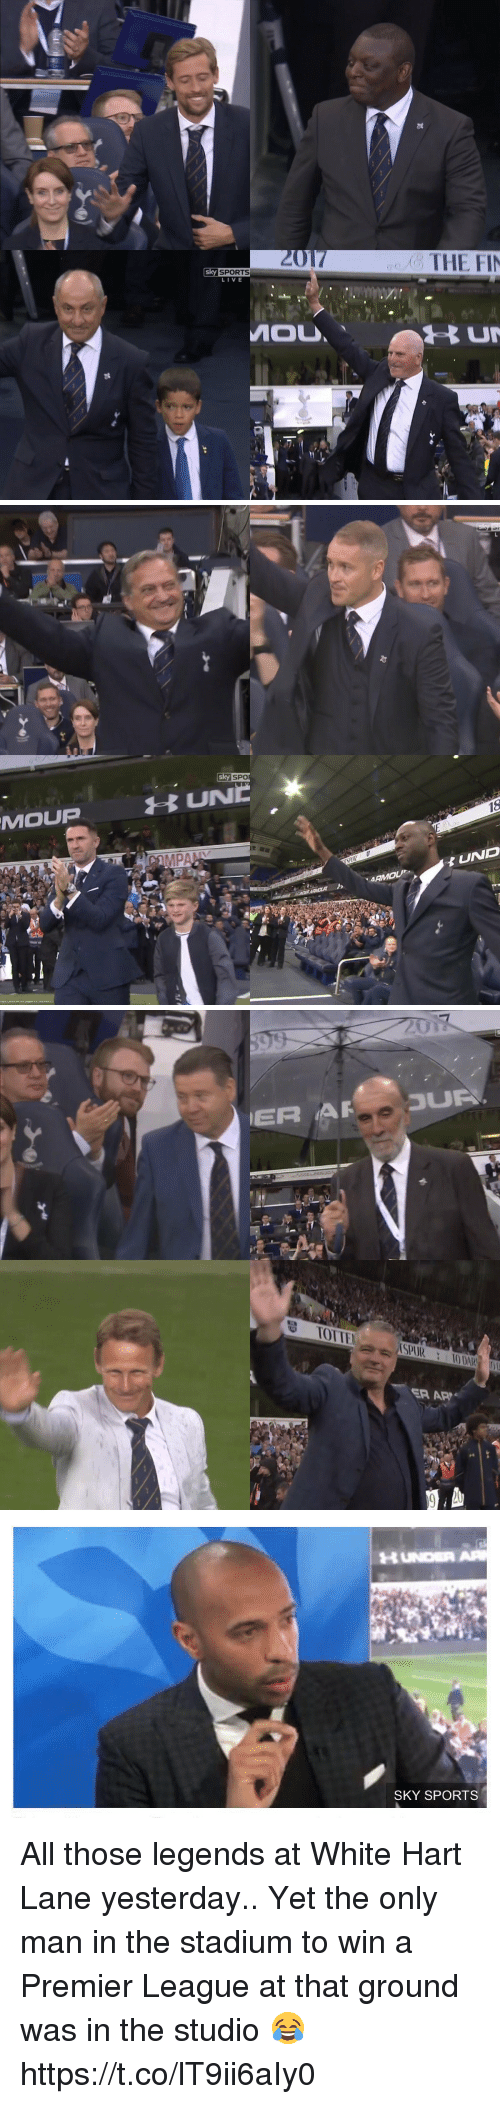 Af, Premier League, and Soccer: Sky SPORTS  LIVE  MOU  THE FIN   MOLUP  Sky SPO  MAAMOLP  UND   ER AF-3U  ㅎ TOITEI  /(SPUR ::10 DAR  ER AP  O   HUNDER AR  SKY SPORTS All those legends at White Hart Lane yesterday..  Yet the only man in the stadium to win a Premier League at that ground was in the studio 😂 https://t.co/lT9ii6aIy0